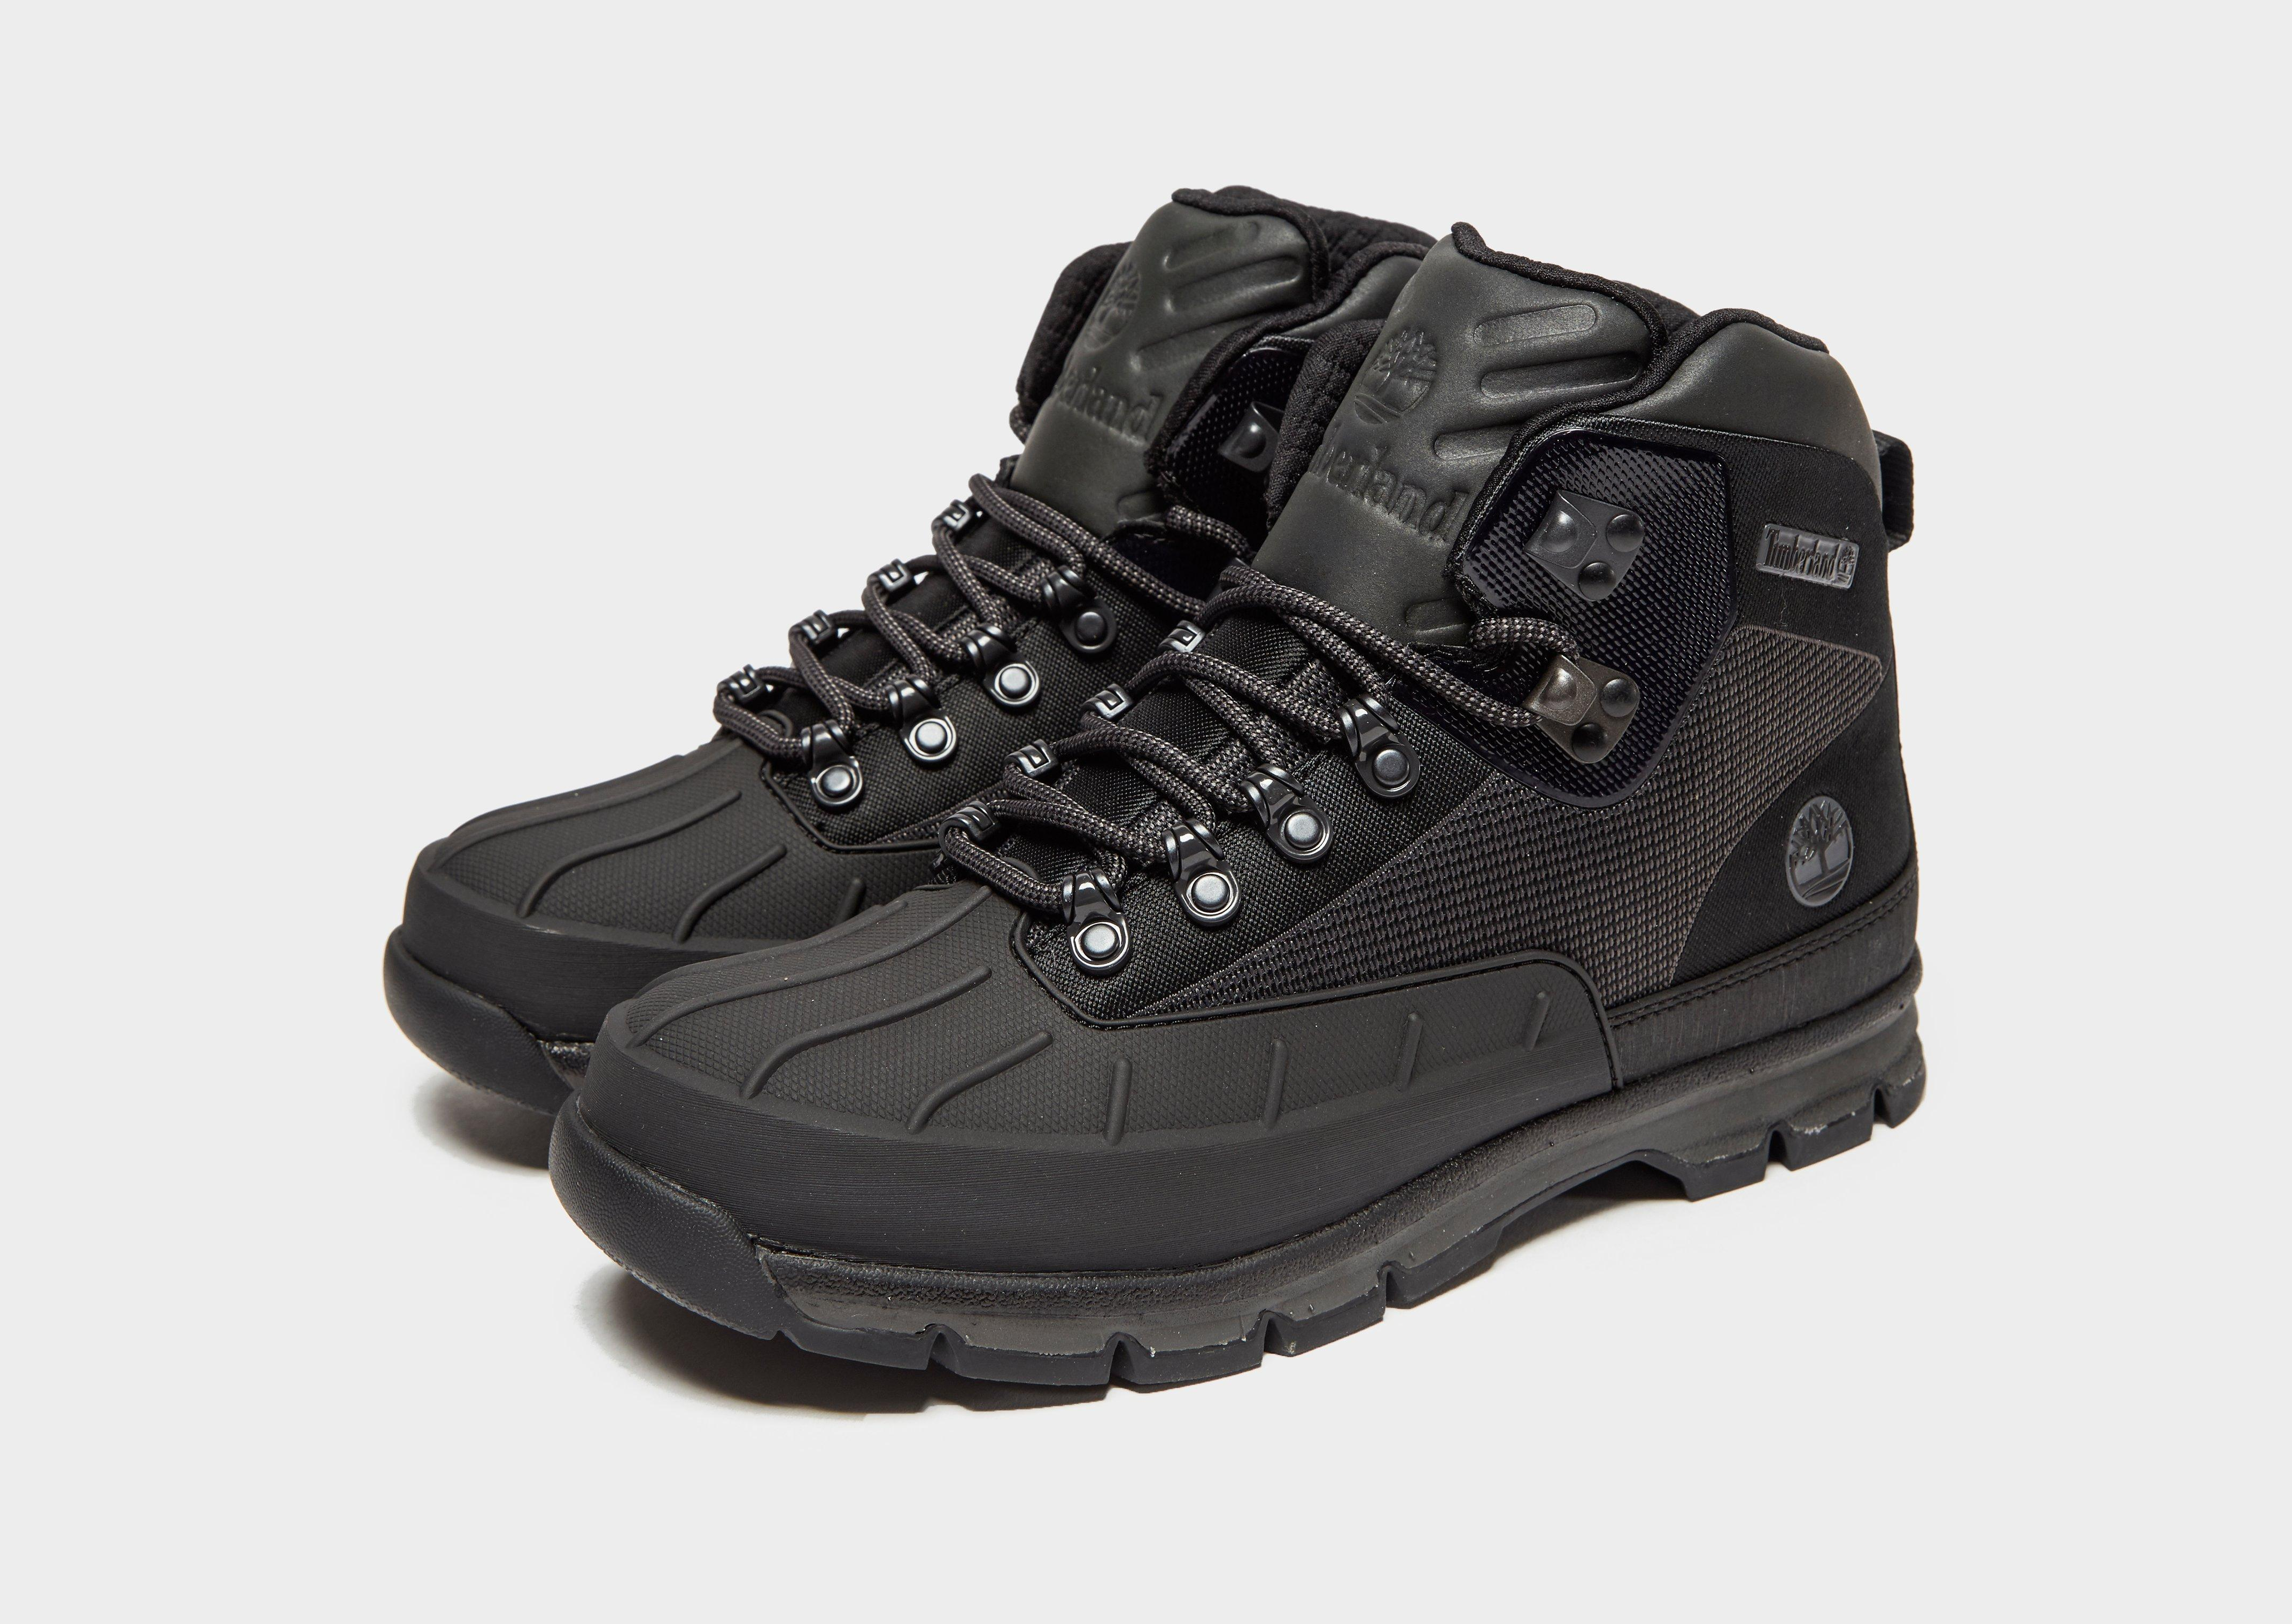 Timberland Synthetic Euro Hiker Shell